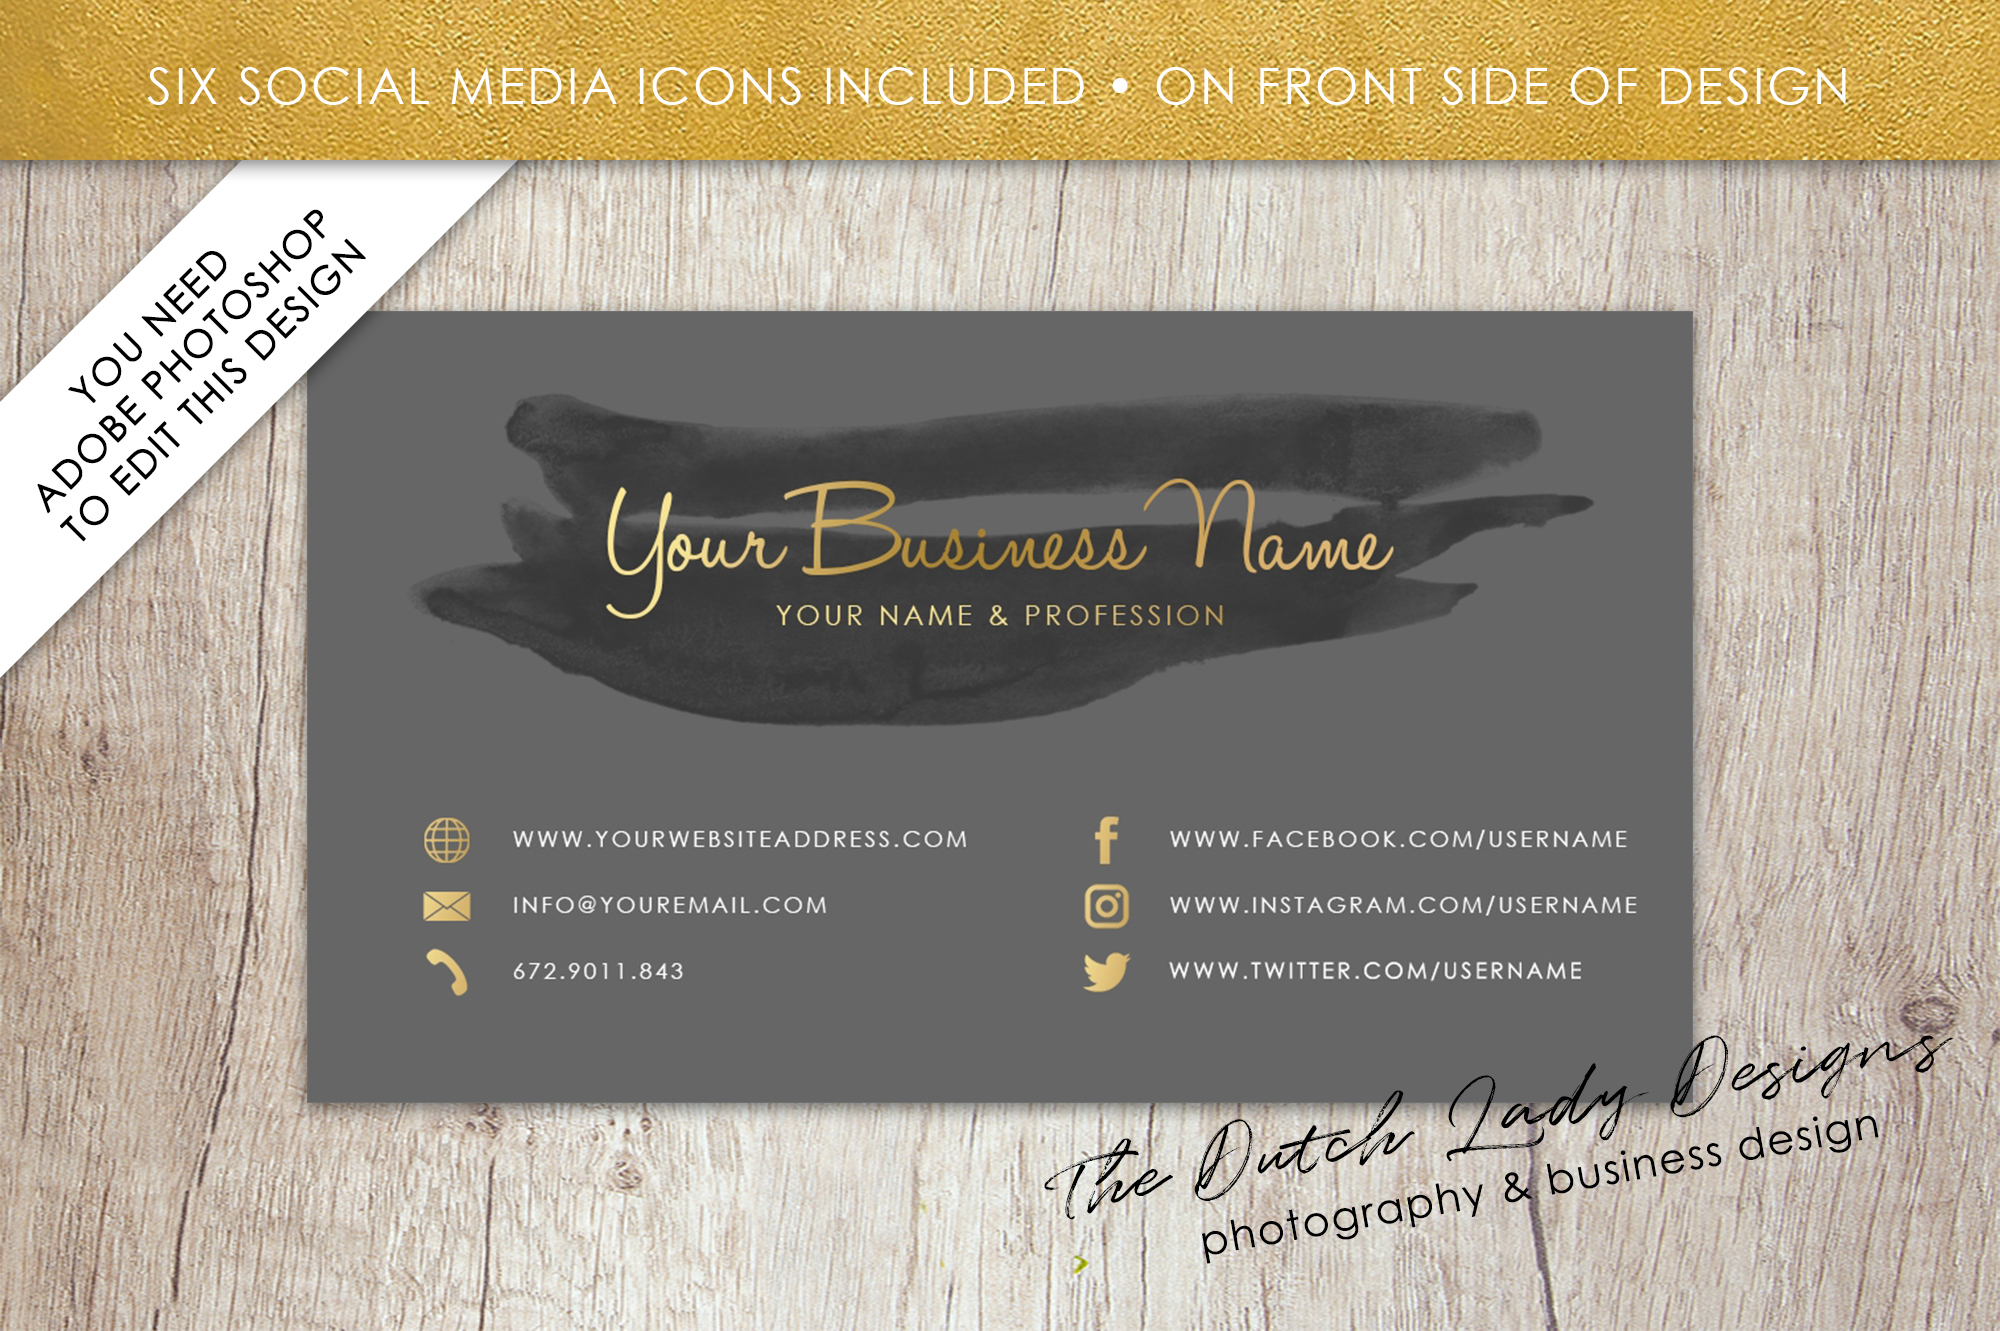 Business card template for adobe photos design bundles business card template for adobe photoshop layered psd template design 10 example image reheart Choice Image